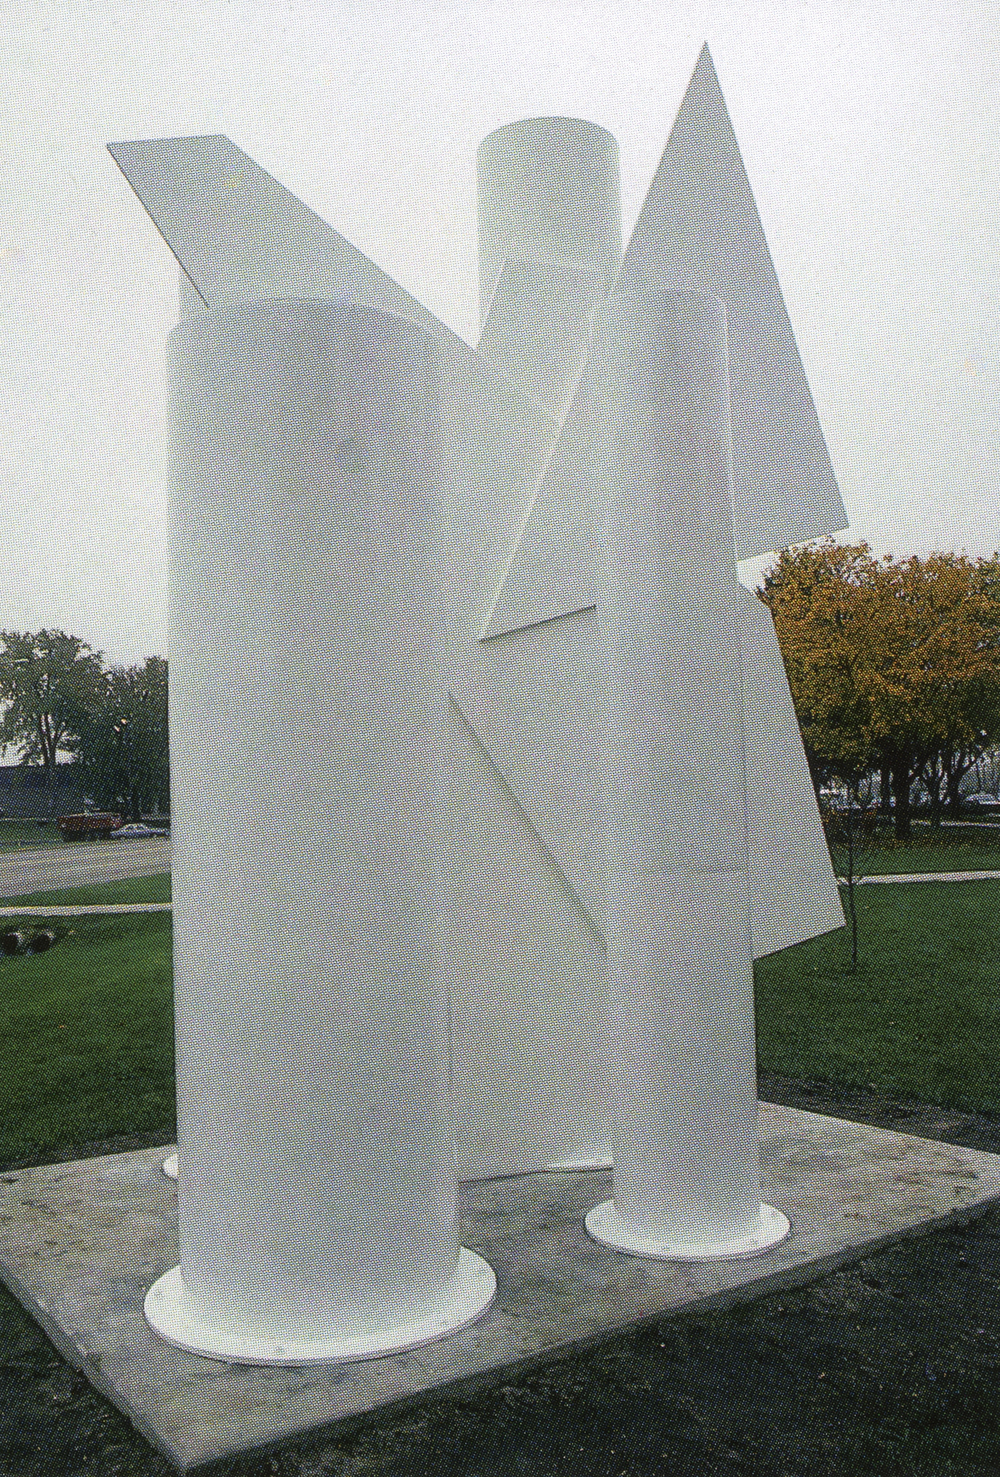 City of Stoughton, Wisconsin; 1993.  Melagro I.  16' x 12' x 9'.